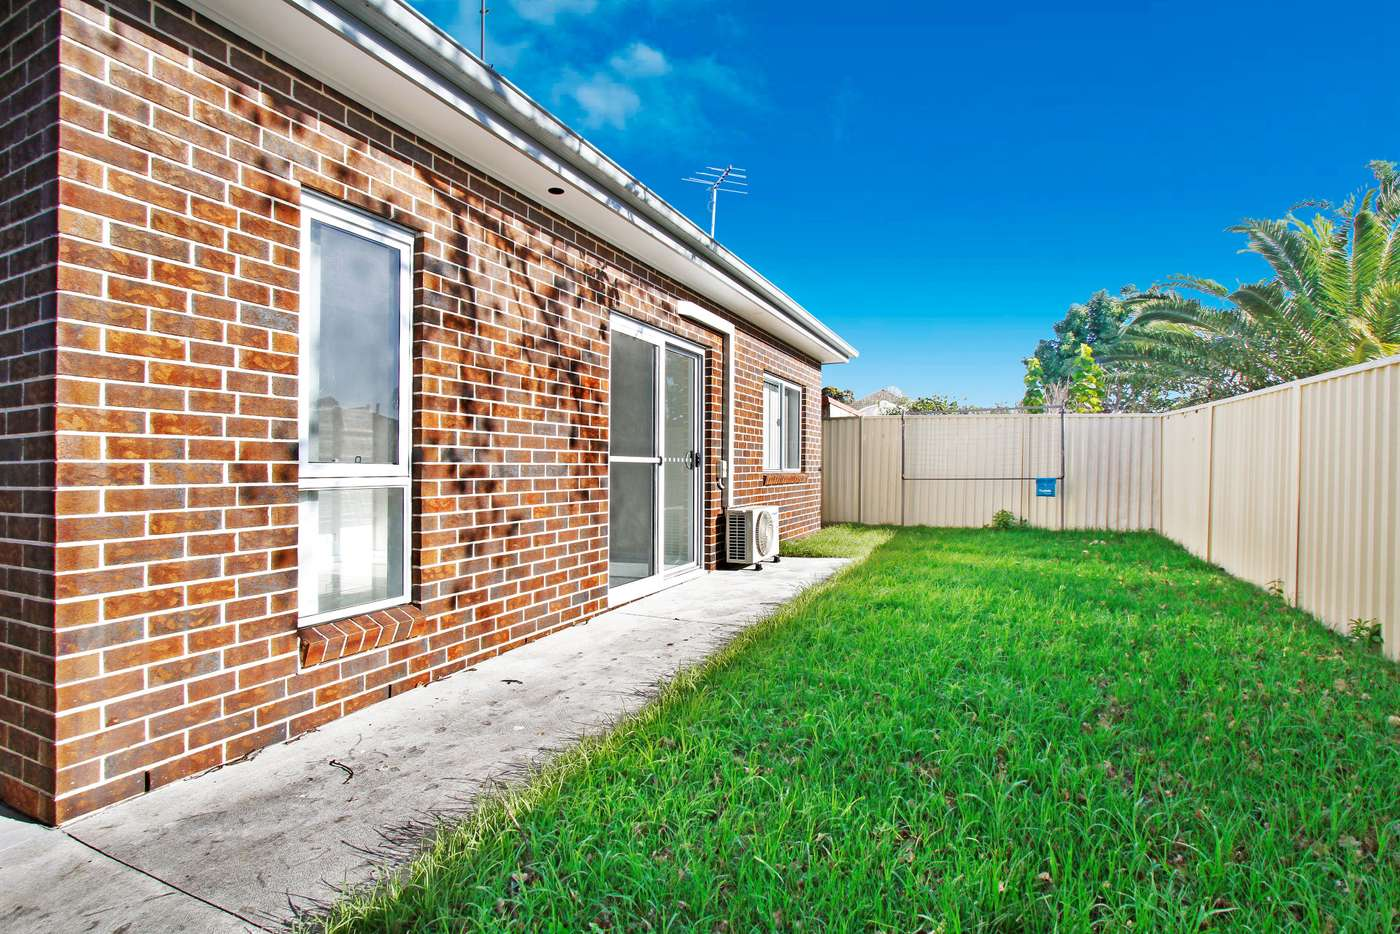 Main view of Homely house listing, 2/23 Hillcrest Street, Wiley Park NSW 2195